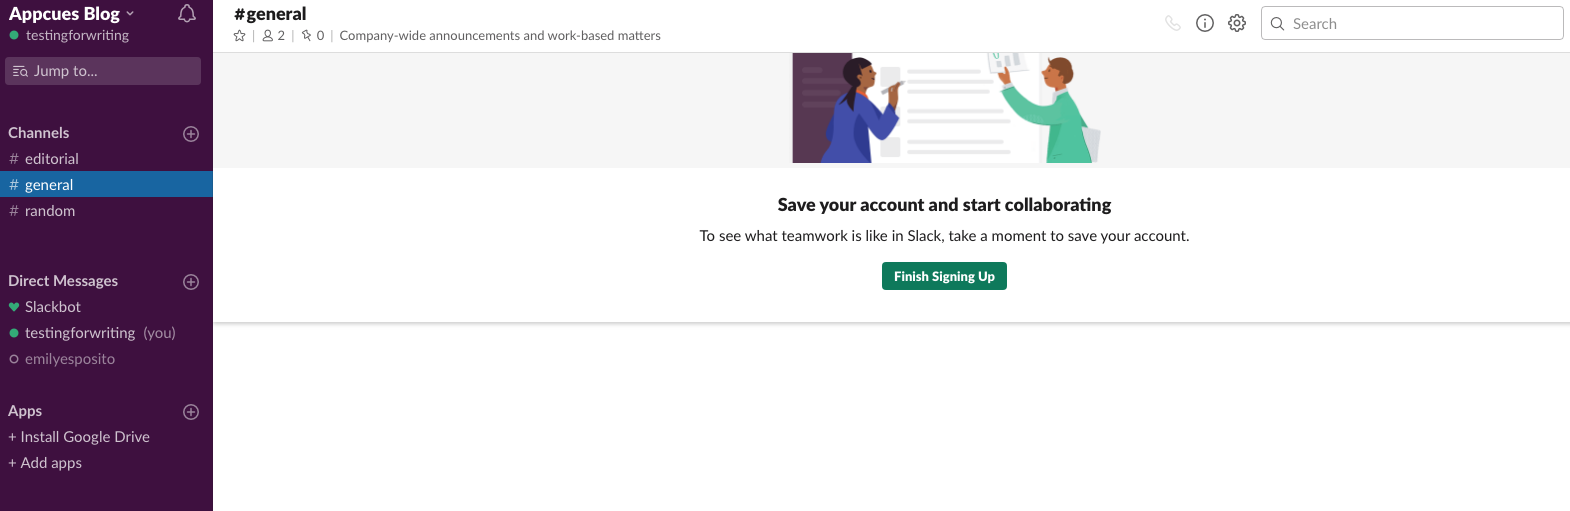 slack 2019 new user onboarding screen finish signup prompt banner